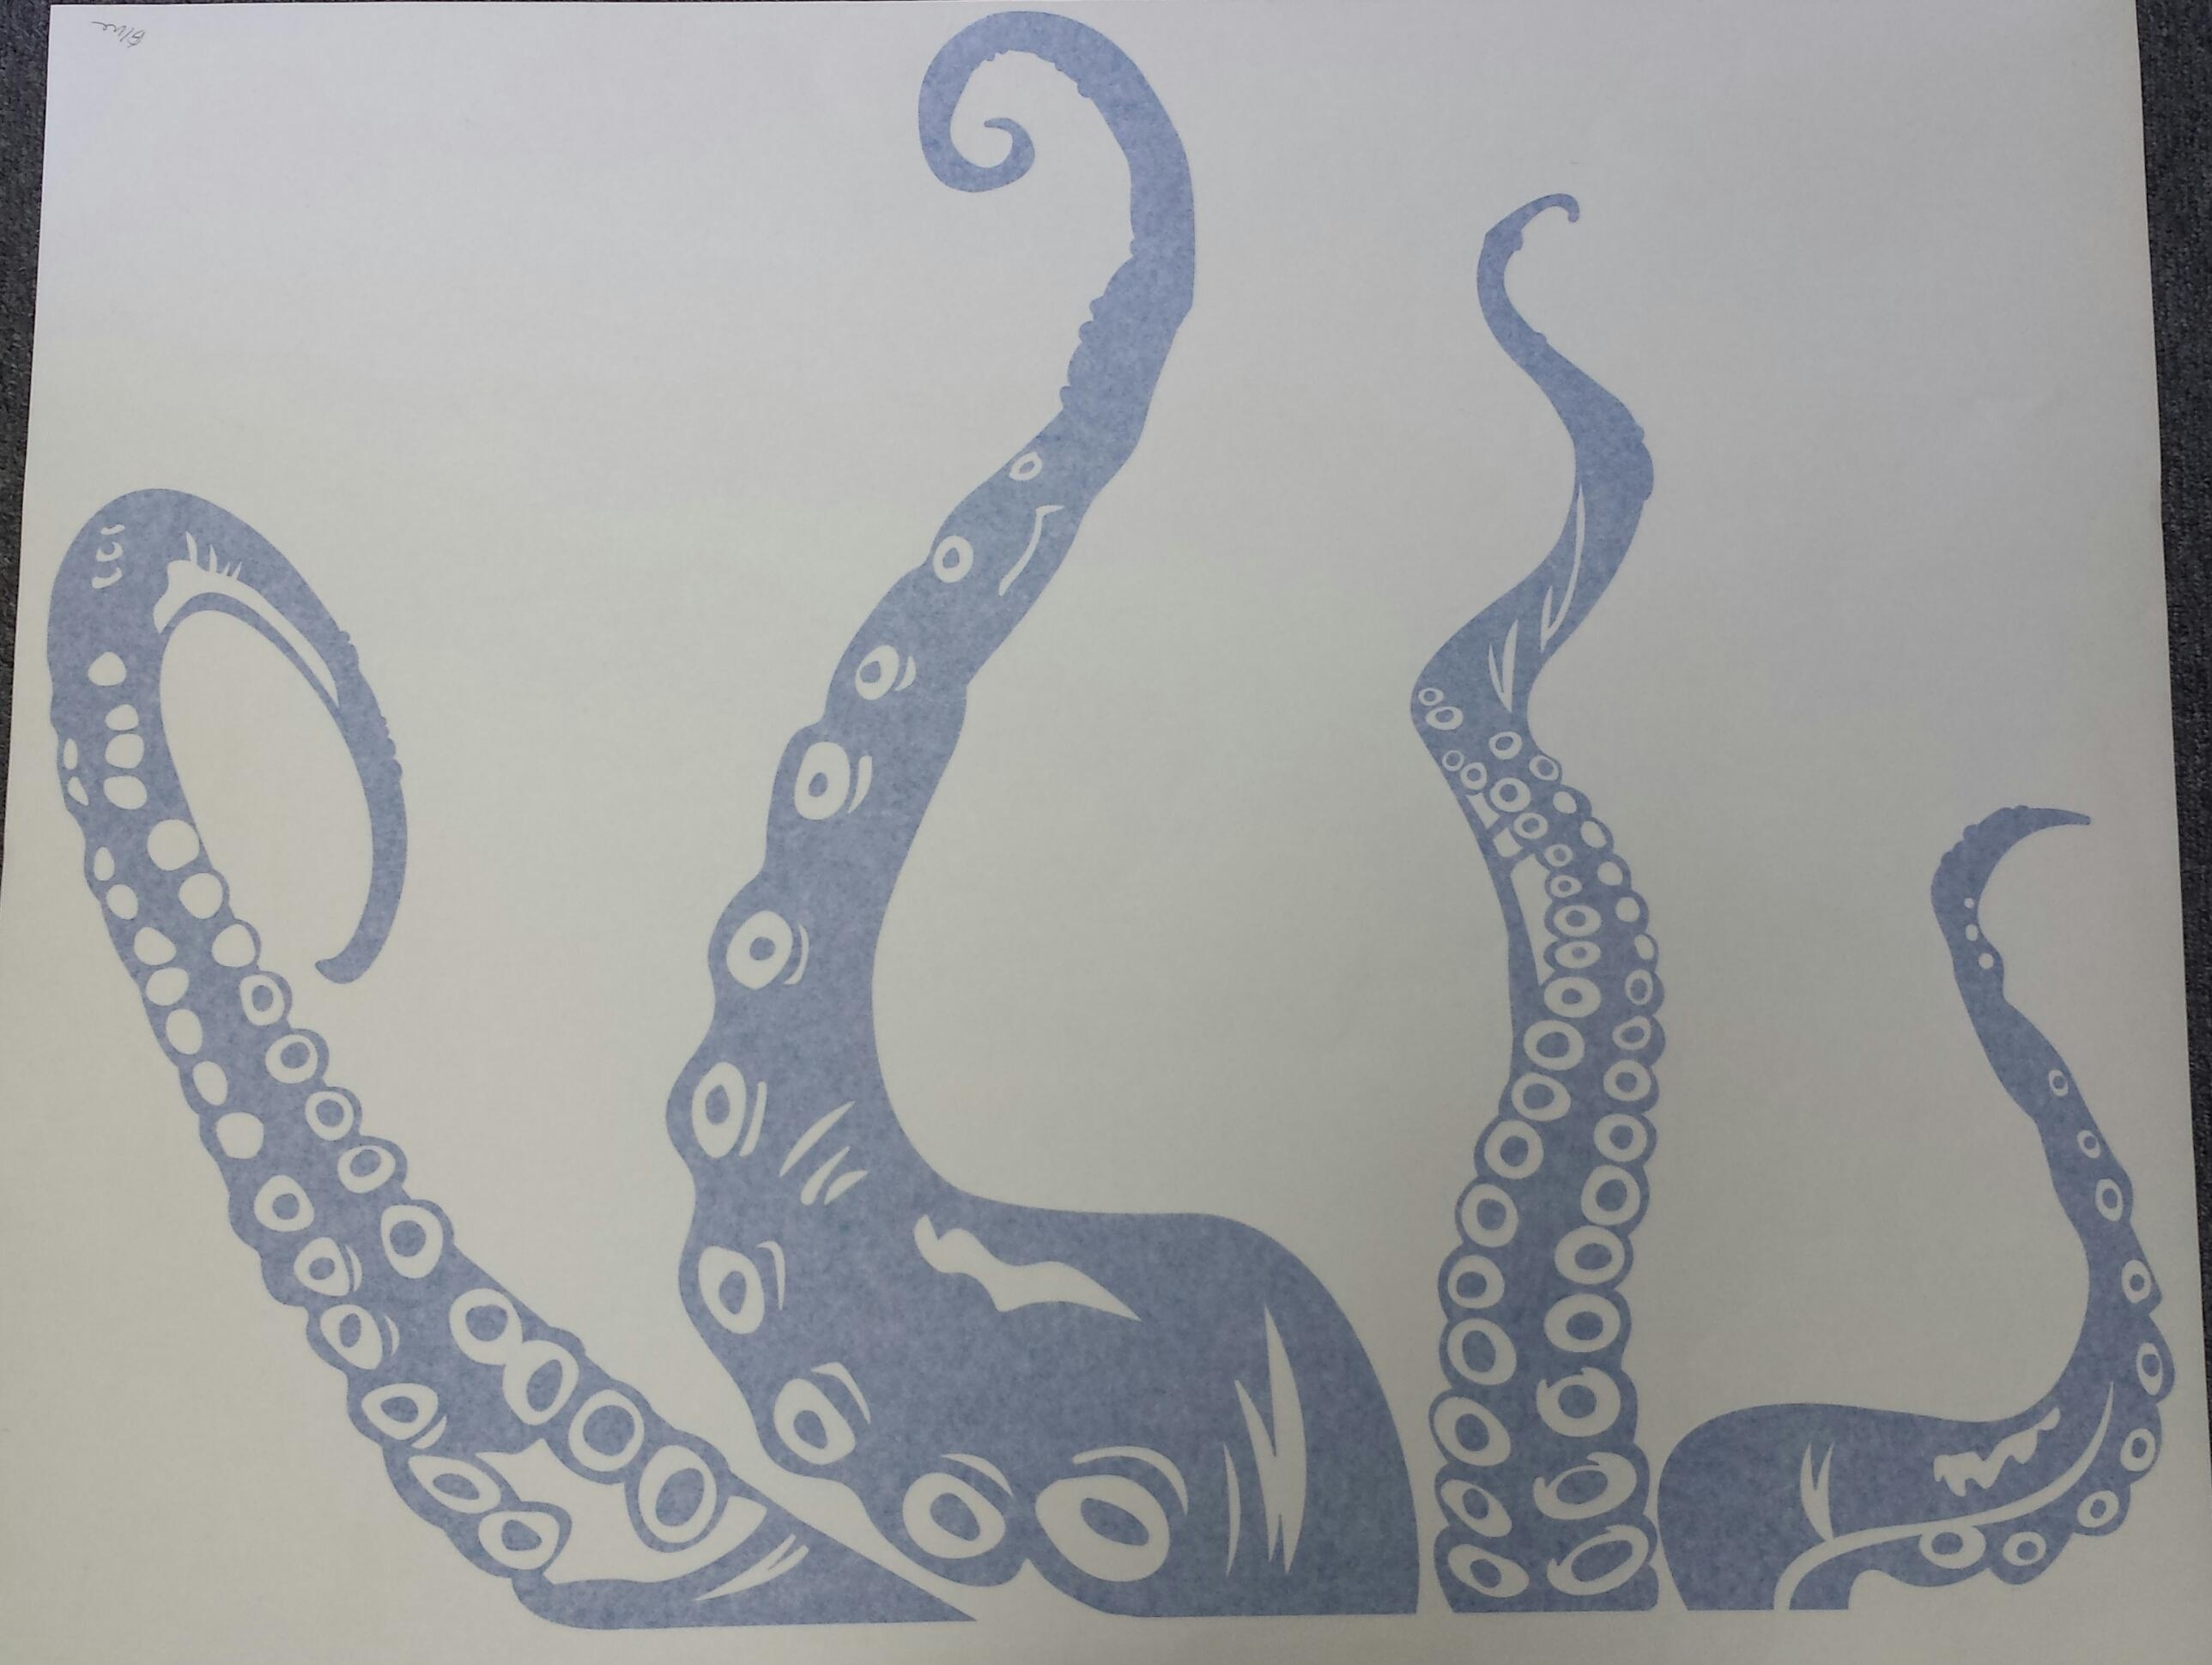 "Clearance] Blue 36"" Octopus Tentacles Wall Art Decal In Octopus Tentacle Wall Art (Image 6 of 20)"